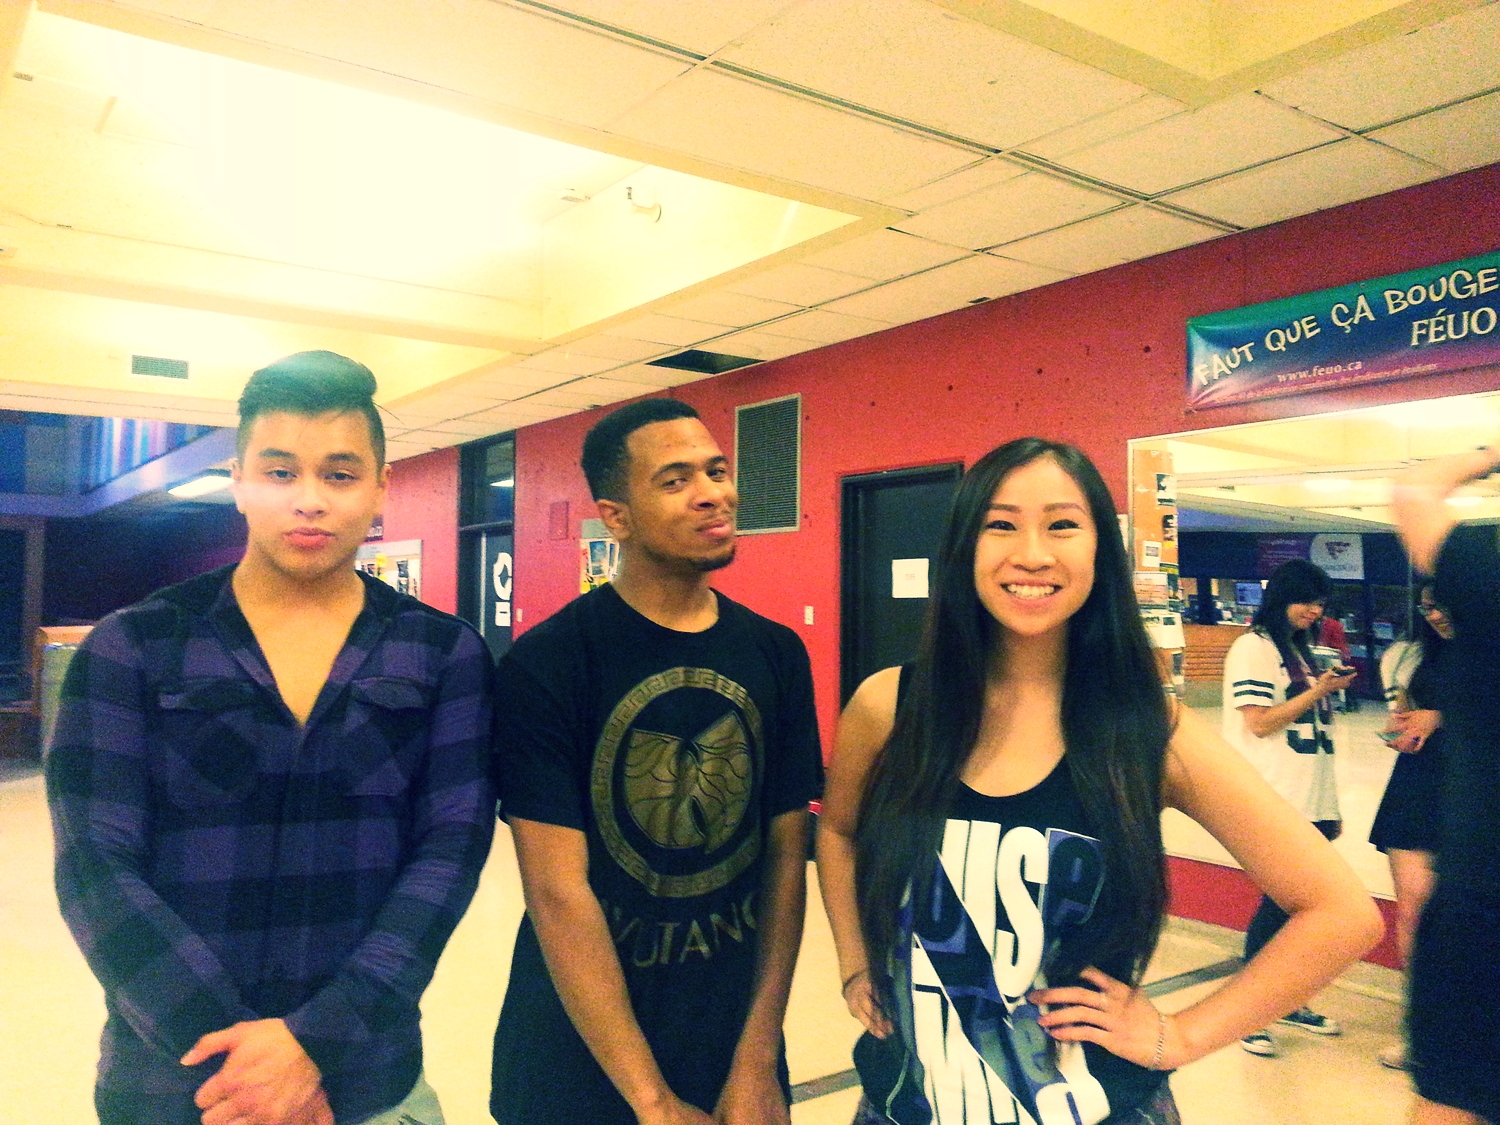 Albert, Jon, and Linh (from the left) are the founders and directors of PNL. Yes, they're as cool as they look.